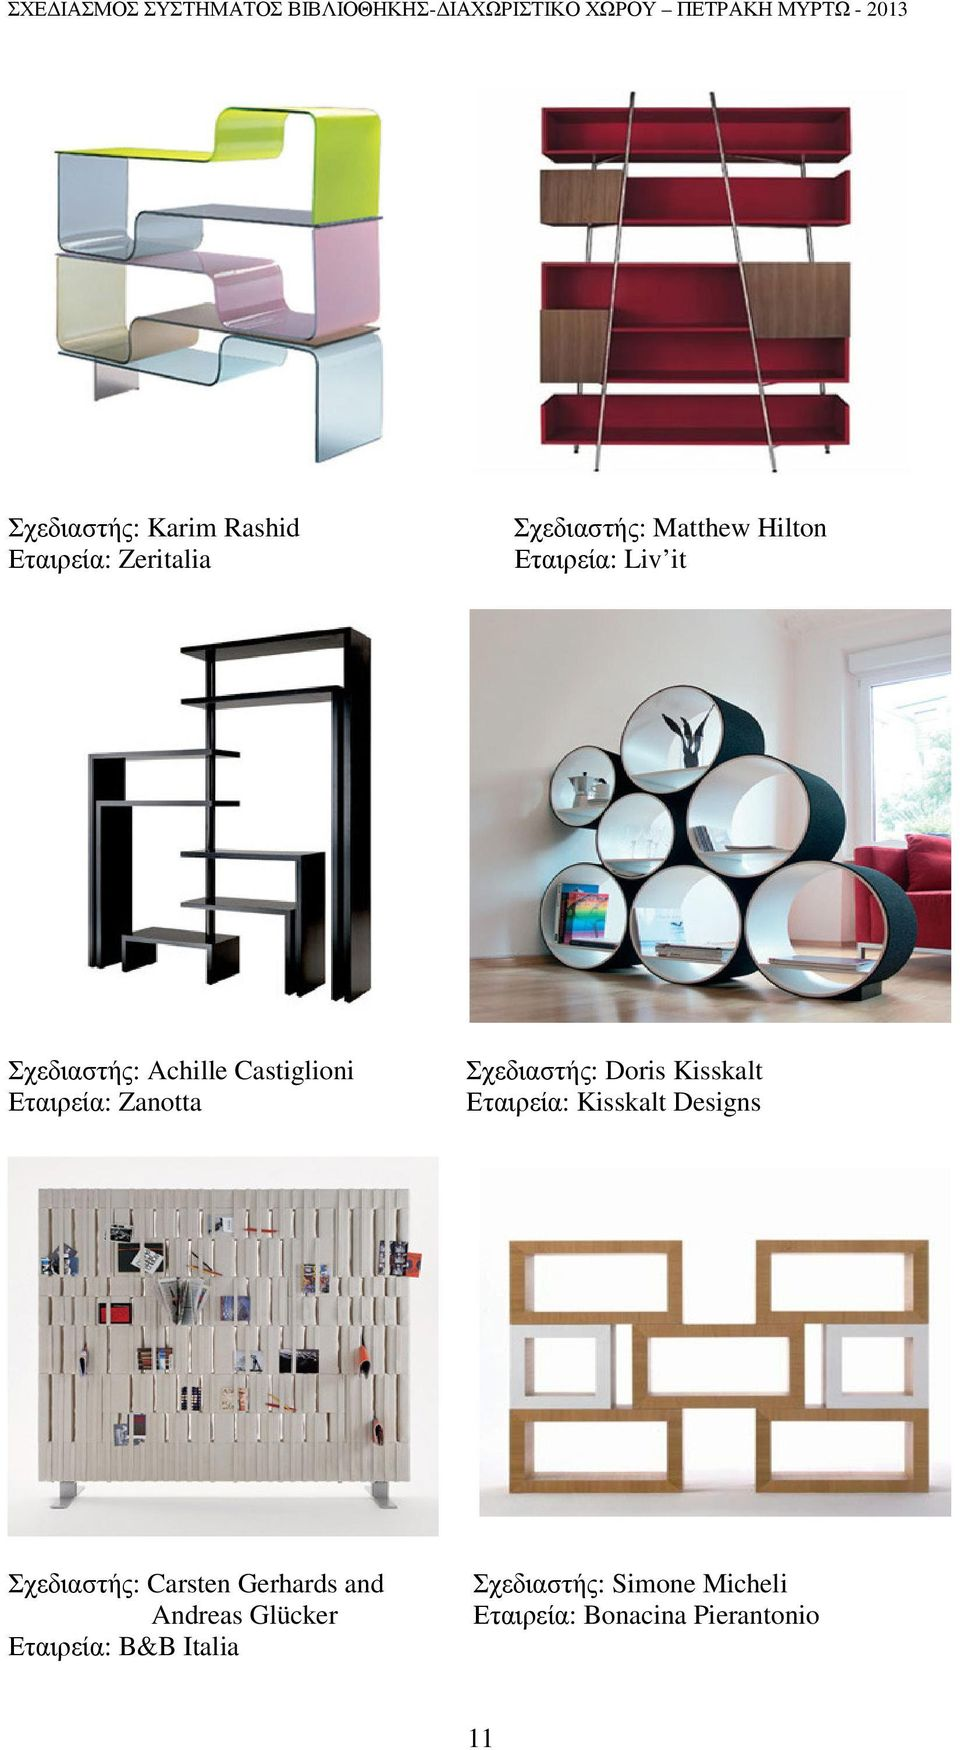 Doris Kisskalt Εταιρεία: Kisskalt Designs Σχεδιαστής: Carsten Gerhards and